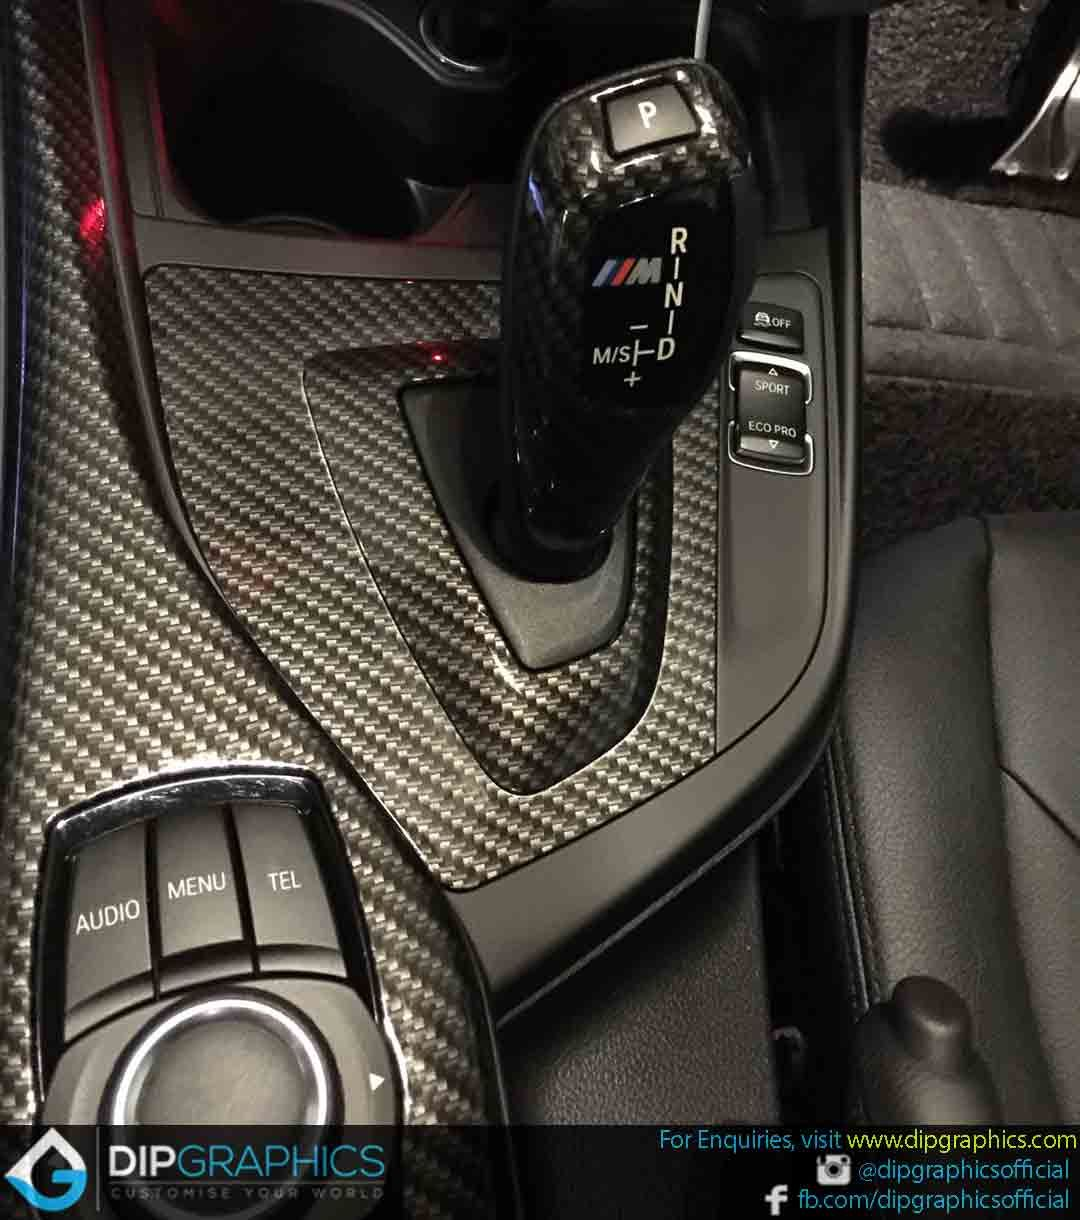 hydro dipped bmw interior panel in carbon fiber 9 automotive hydrographics pinterest. Black Bedroom Furniture Sets. Home Design Ideas